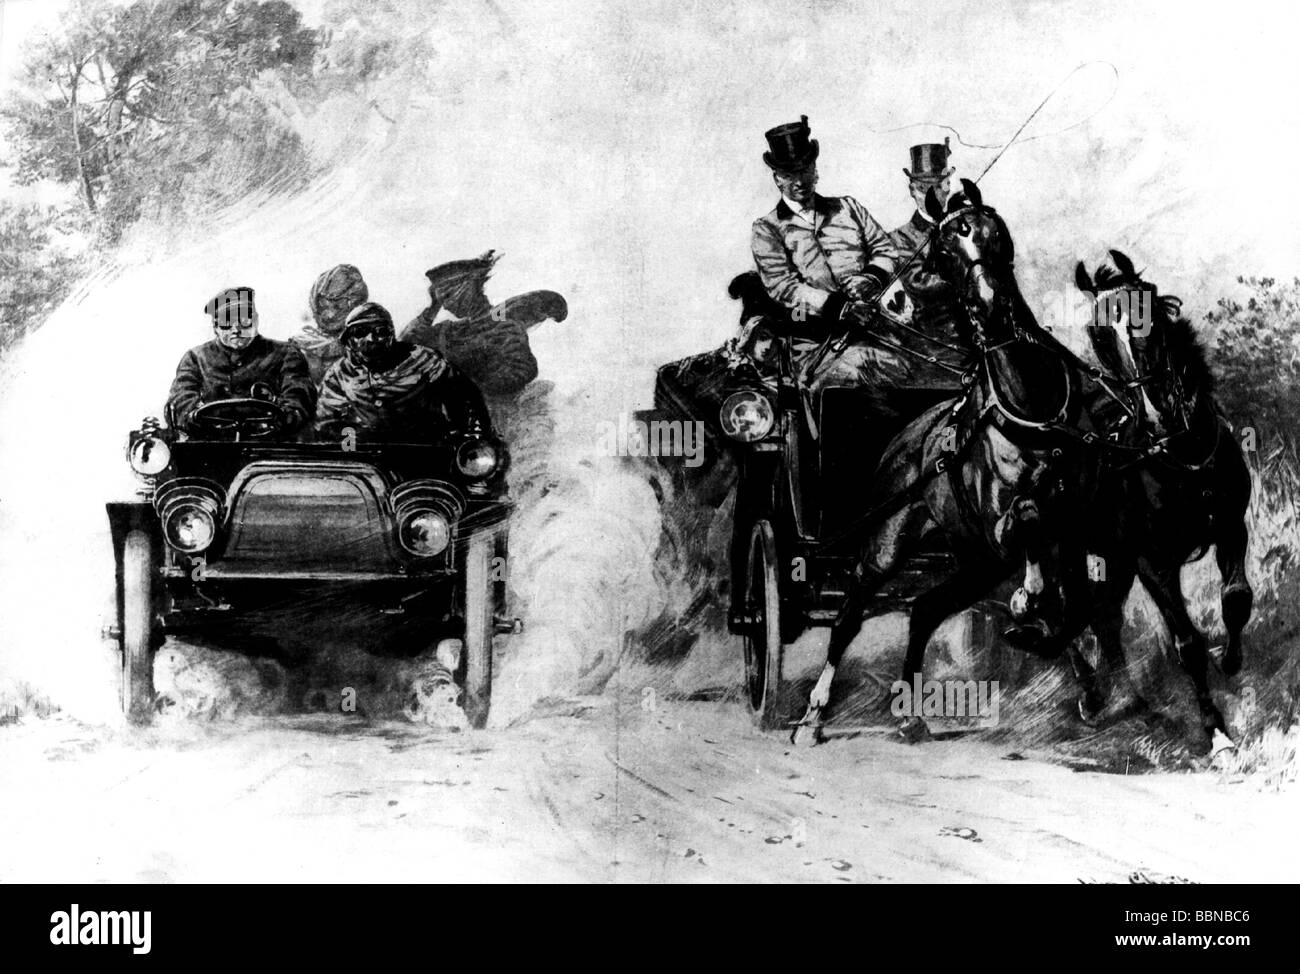 transport / transportation, coach, race between one horse-drawn coach and a car, 'Hostile Powers', drawing - Stock Image